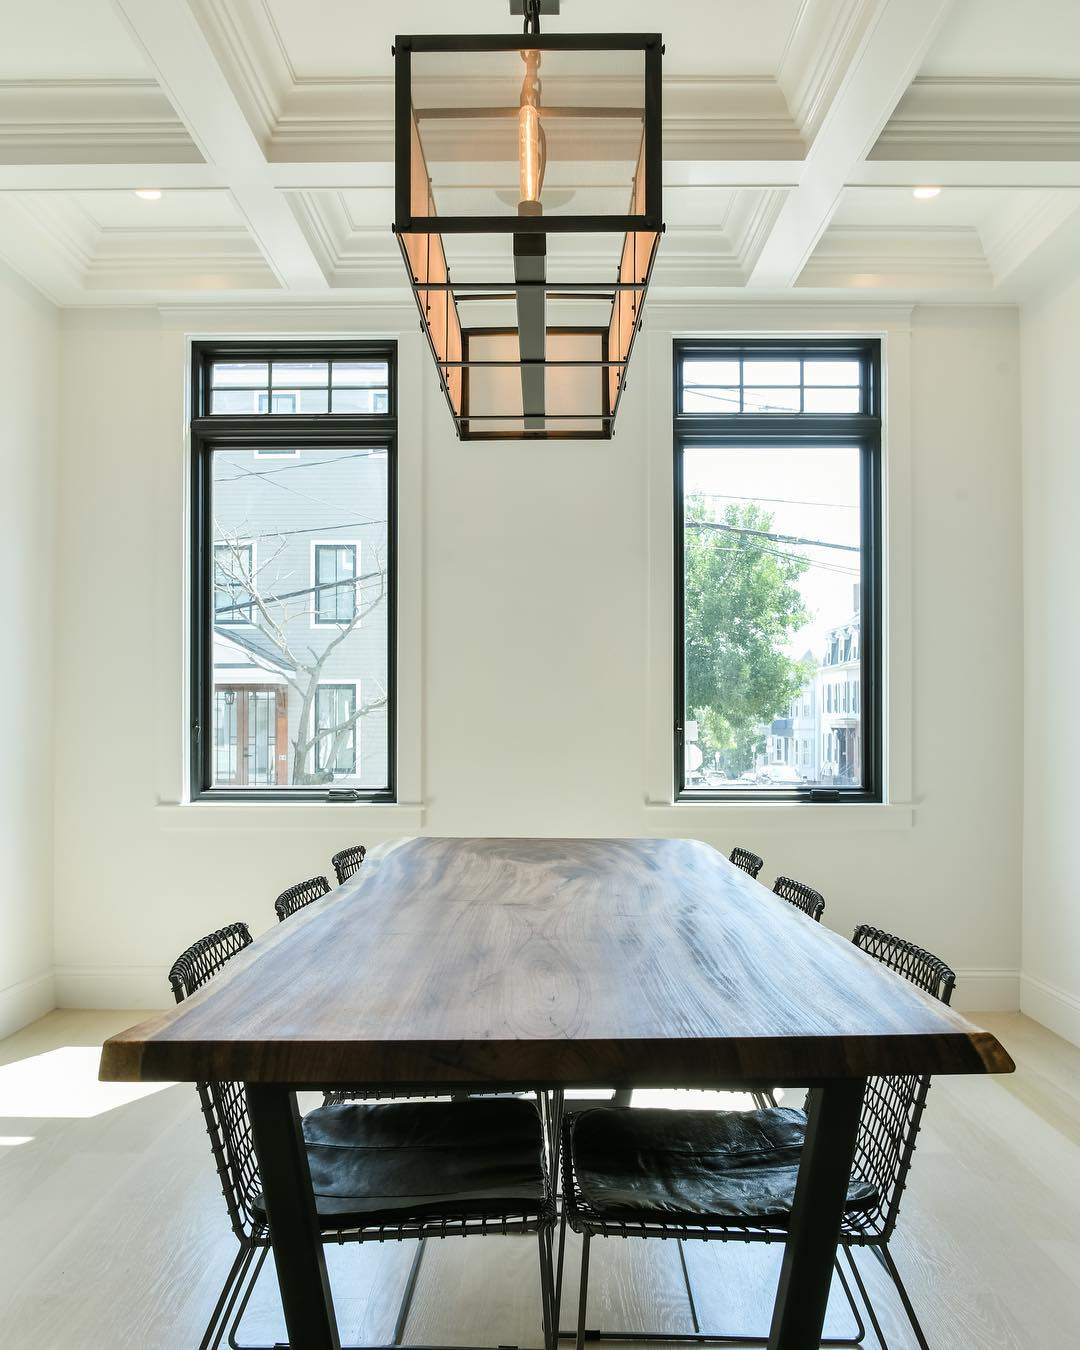 Contemporary dining room brightened by two casement windows with small fixed windows overhead